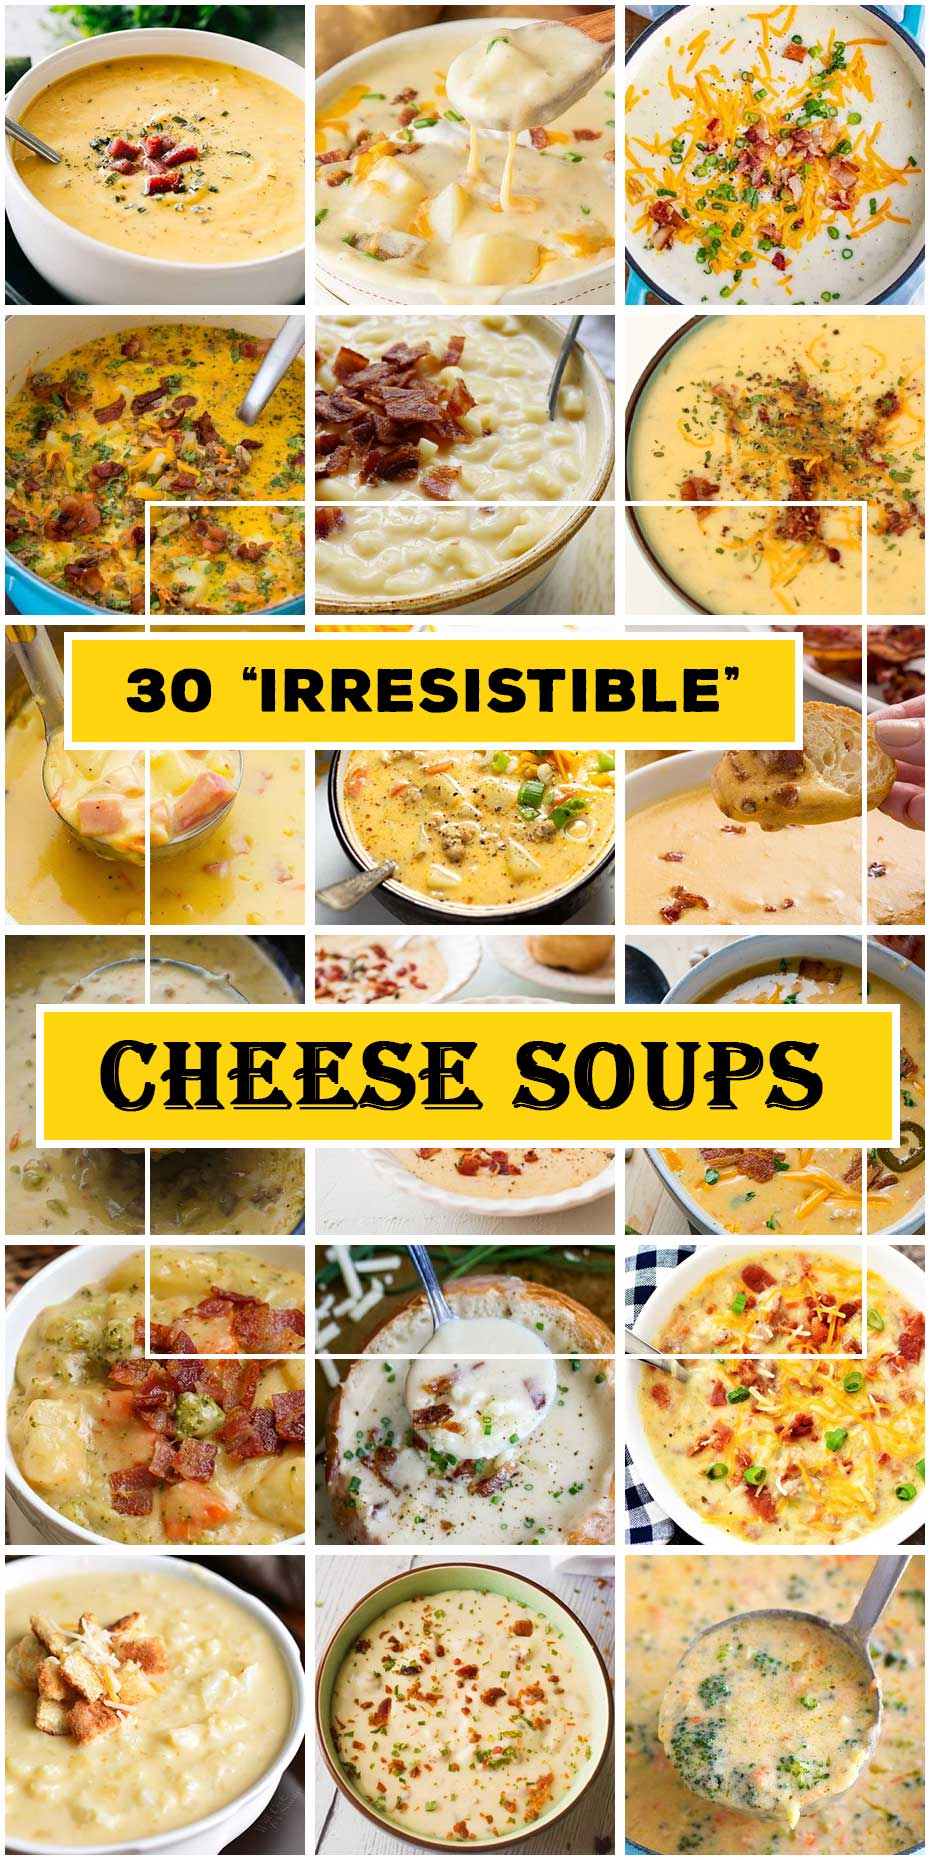 30 Best Cheese Soups To Tease Your Taste Buds